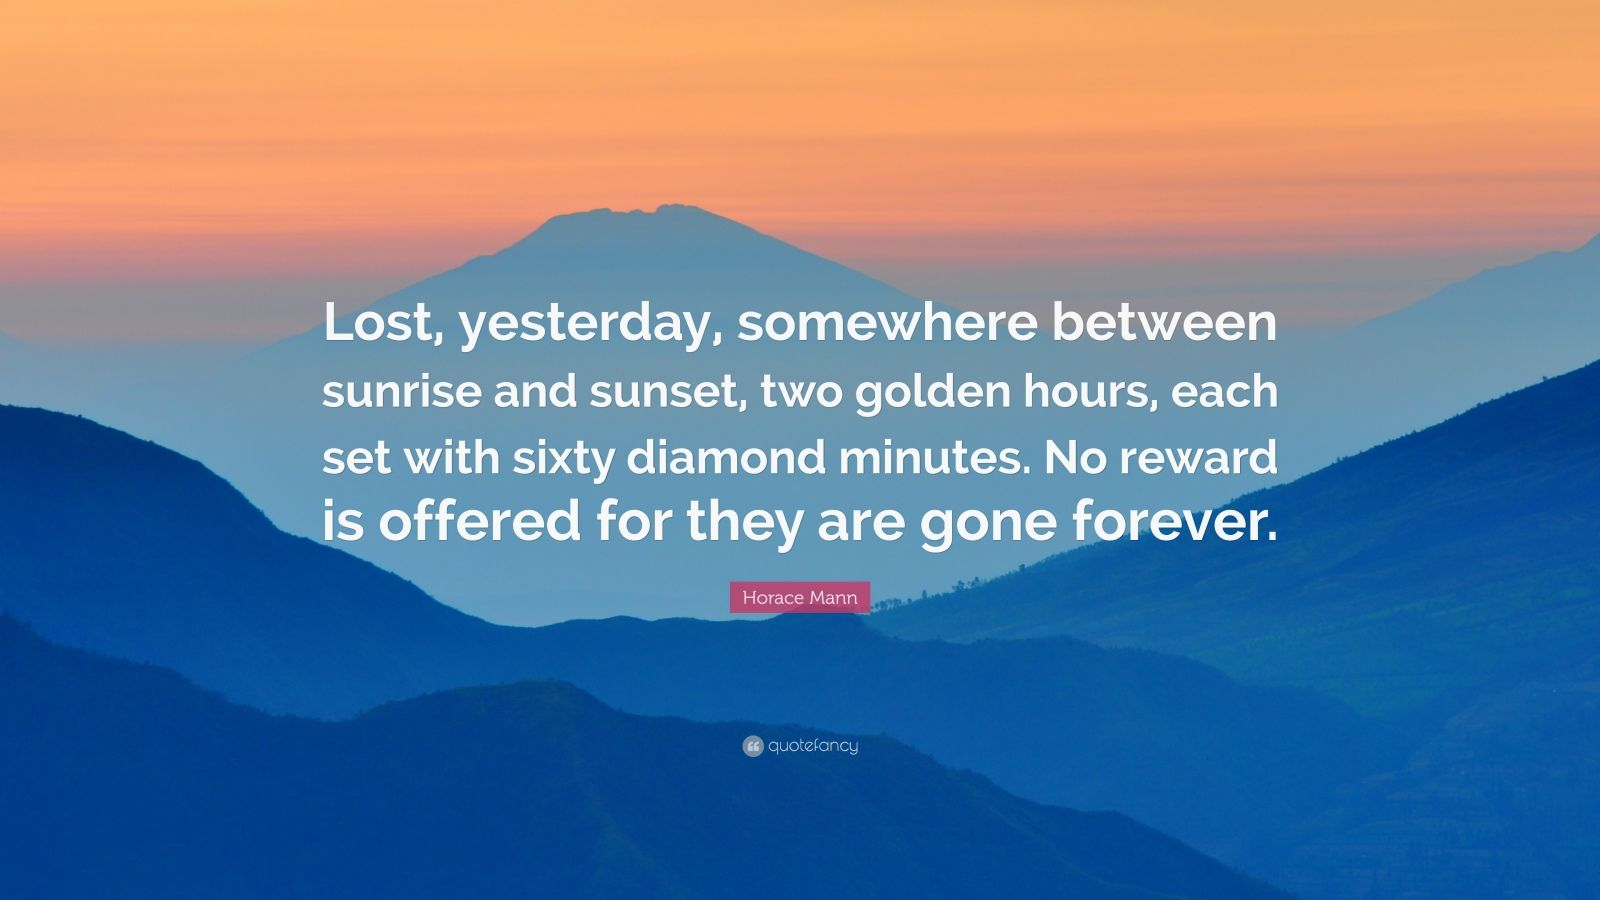 """Horace Mann Quote: """"Lost, yesterday, somewhere between sunrise and sunset, two golden hours, each set with sixty diamond minutes. No reward is offered for they are gone forever."""""""